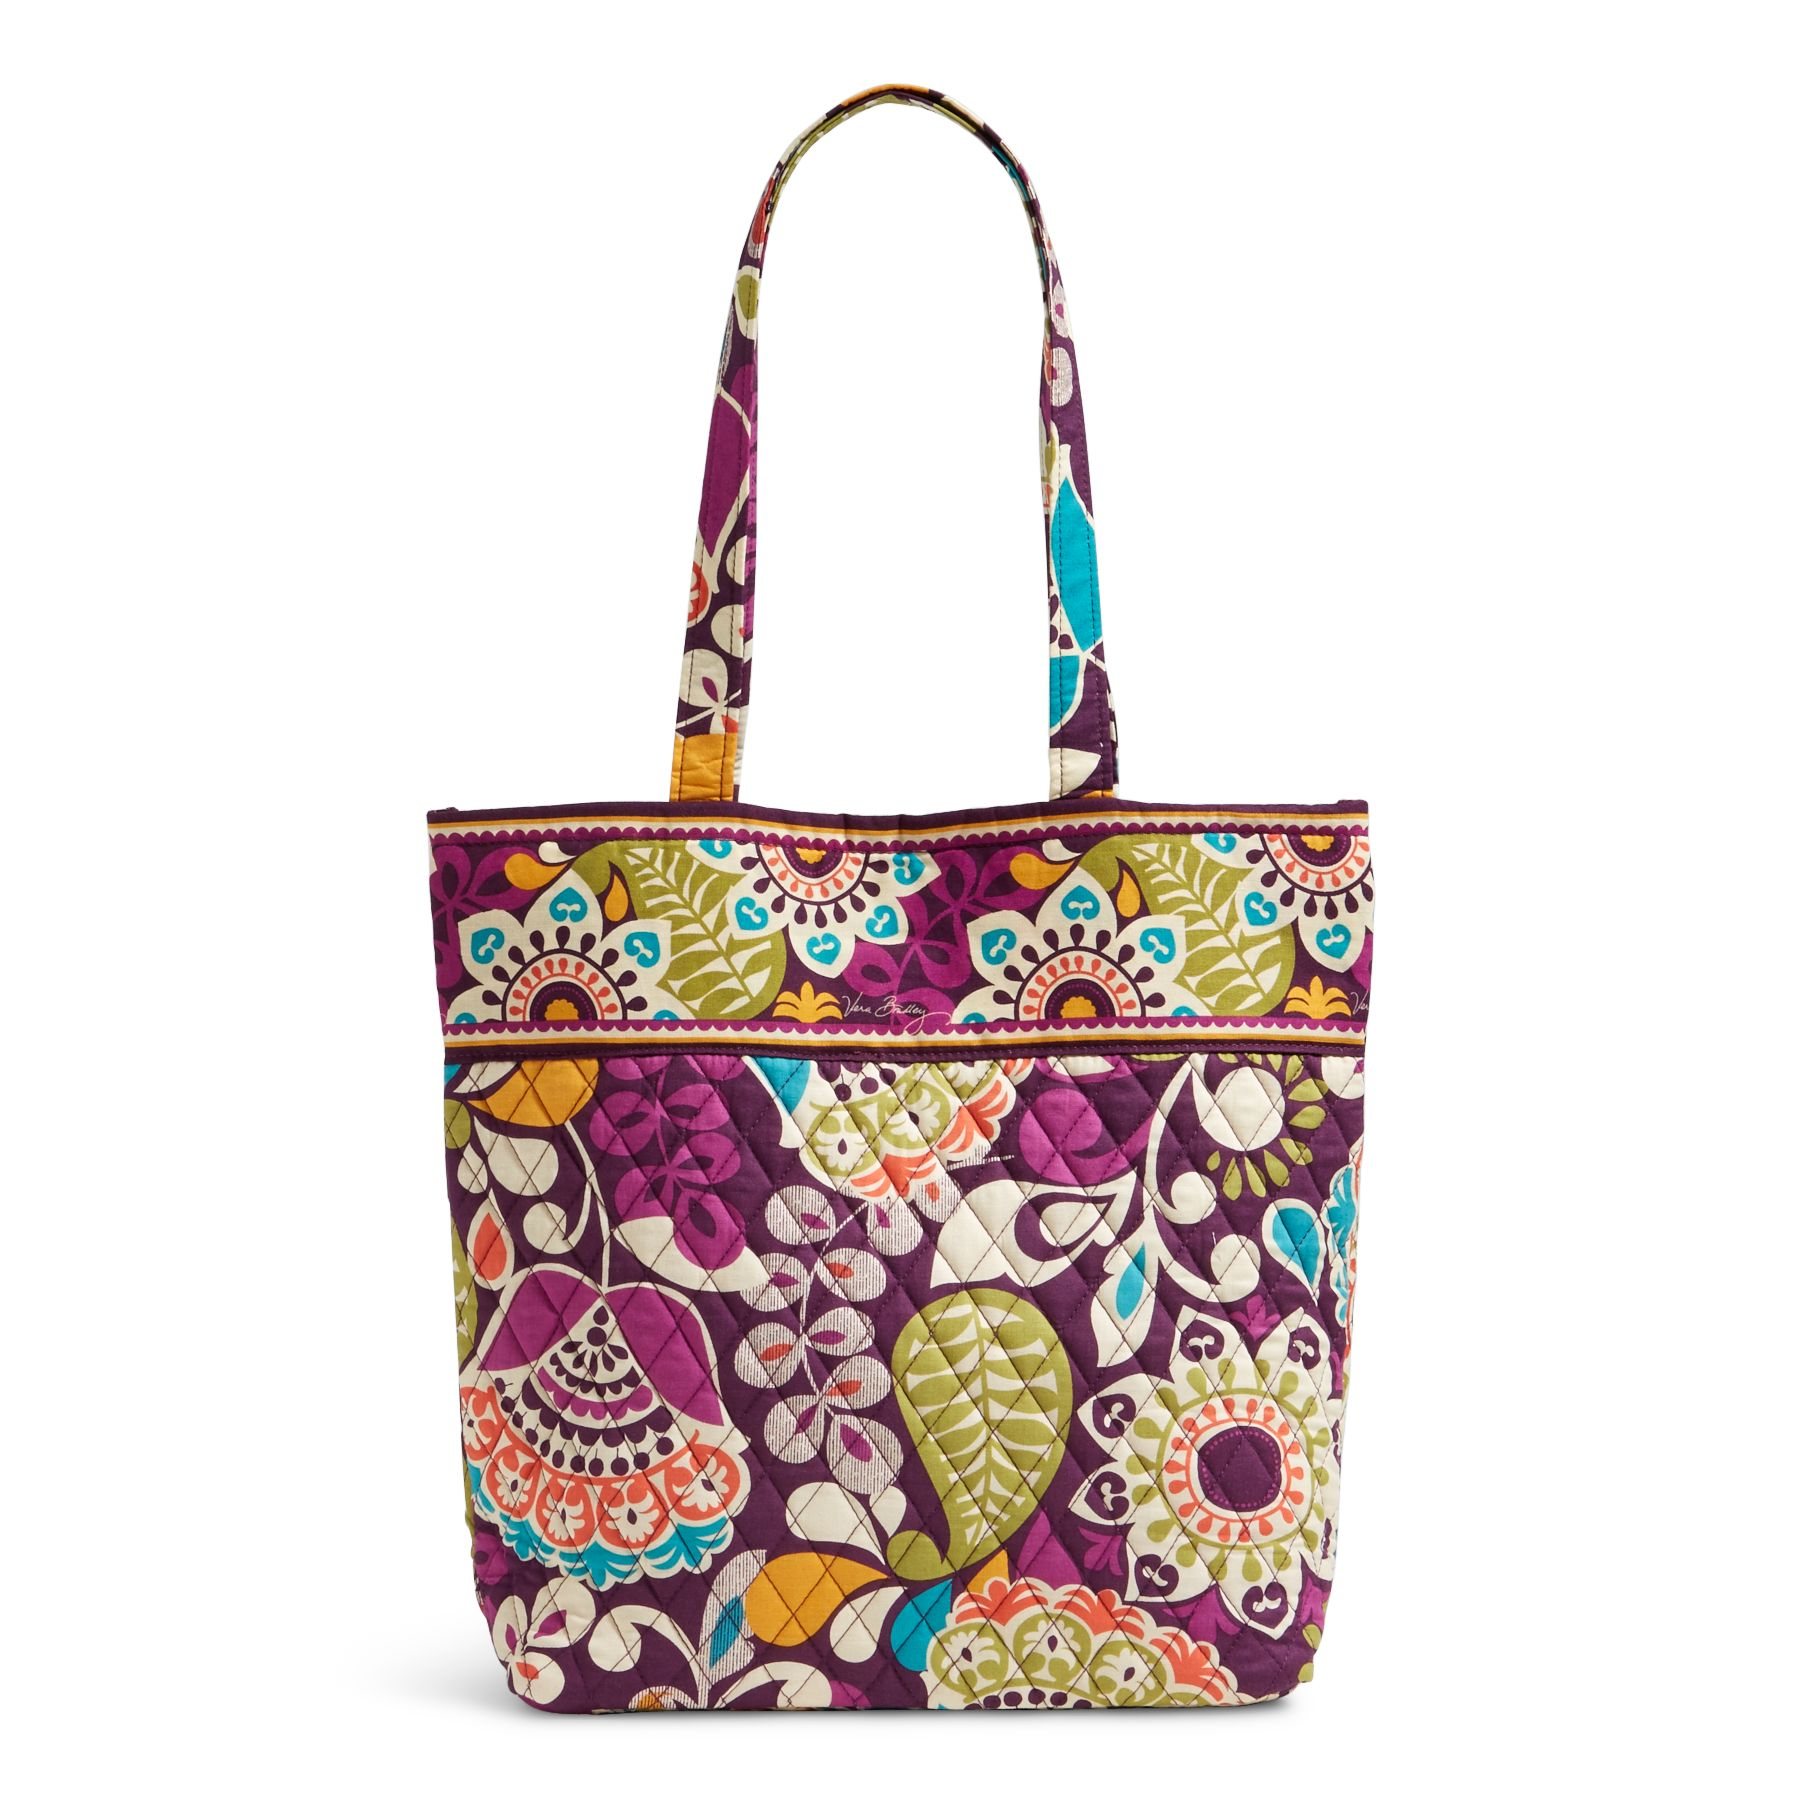 Find great deals on eBay for vera bradley avatar-base.mls Made Easy· Make Money When You Sell· Under $10· Fill Your Cart With ColorTypes: Fashion, Home & Garden, Electronics, Motors, Collectibles & Arts, Toys & Hobbies.